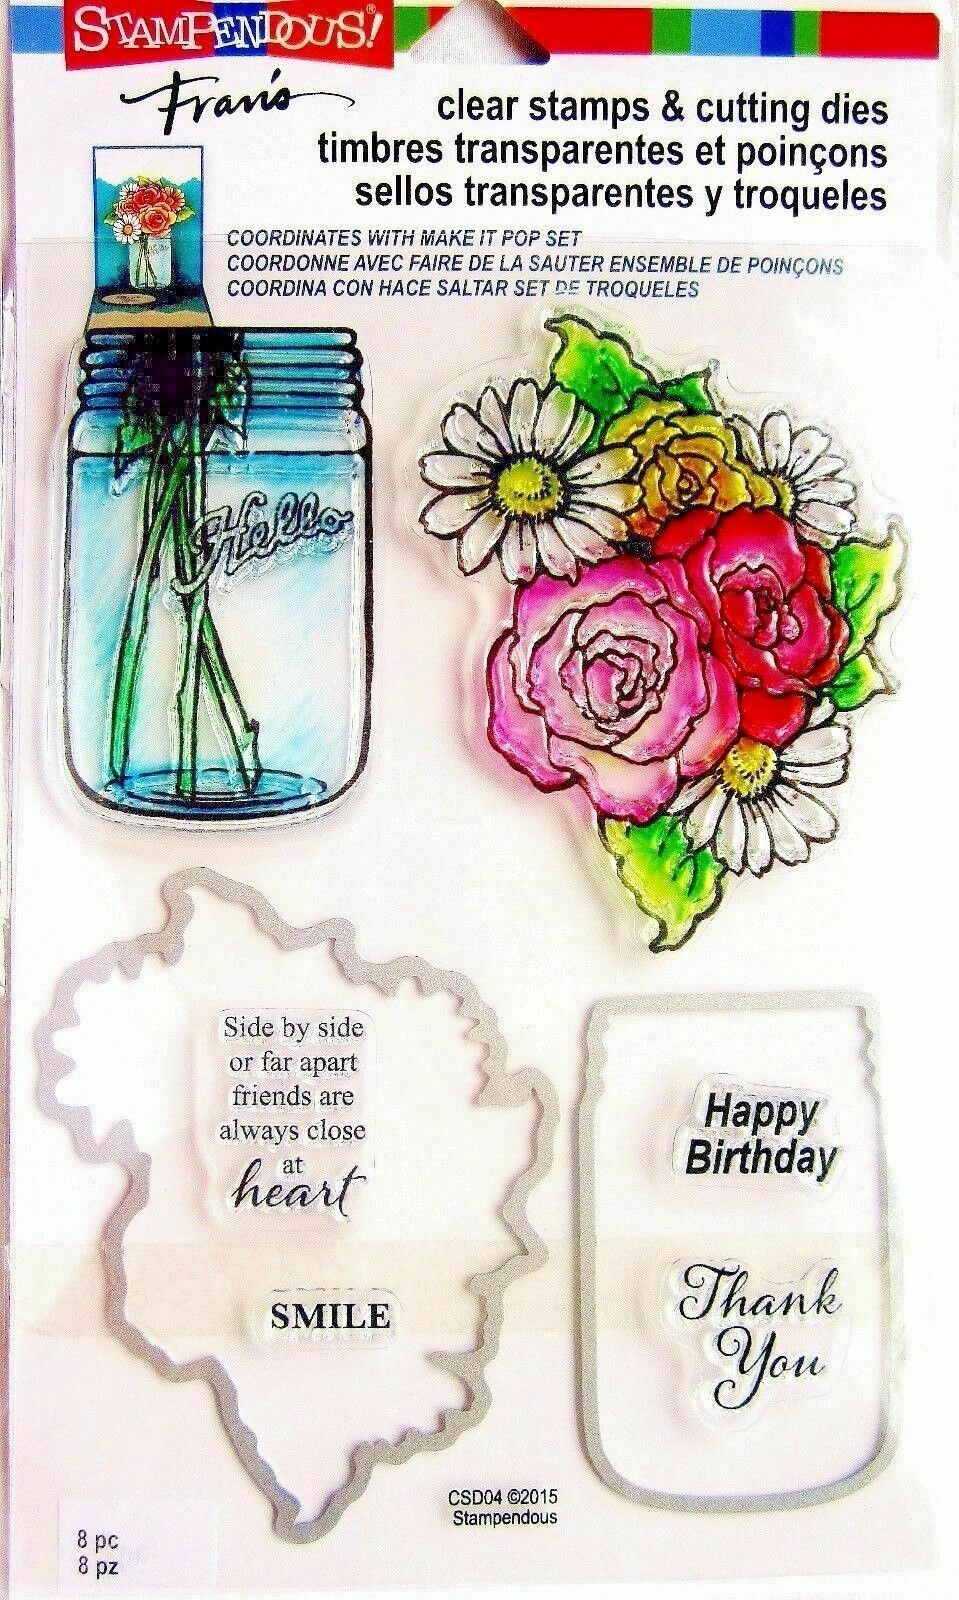 JAR//FLOWERS CLEAR STAMPS AND CUTTING DIES STAMPENDOUS 8 PIECES